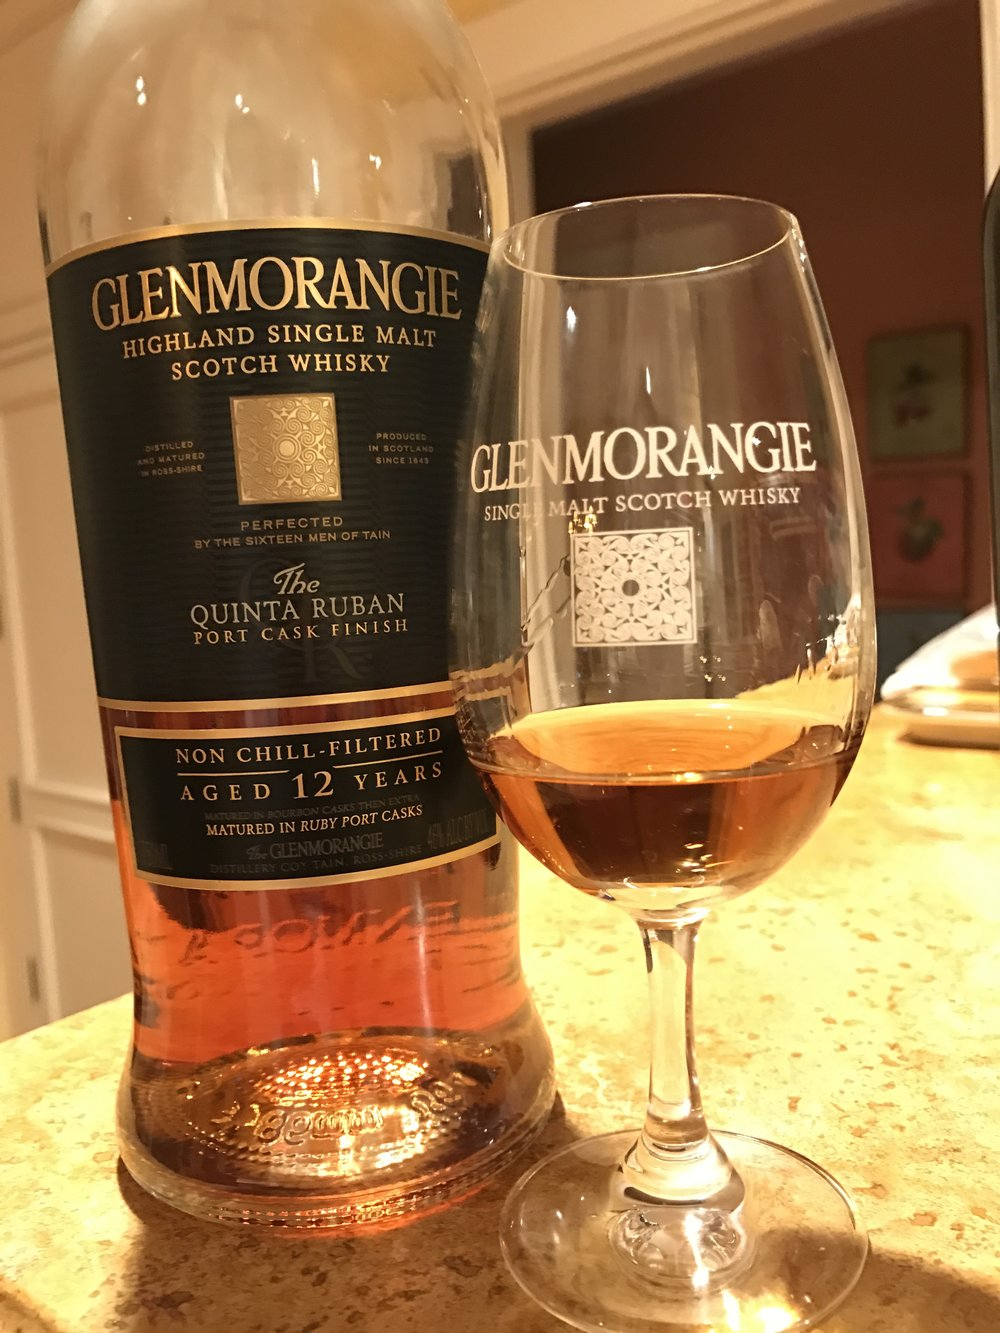 The Glenmorangie Quinta Ruban Scotch whisky picks up its beautiful caramel color from being extra-matured in Port barrels.